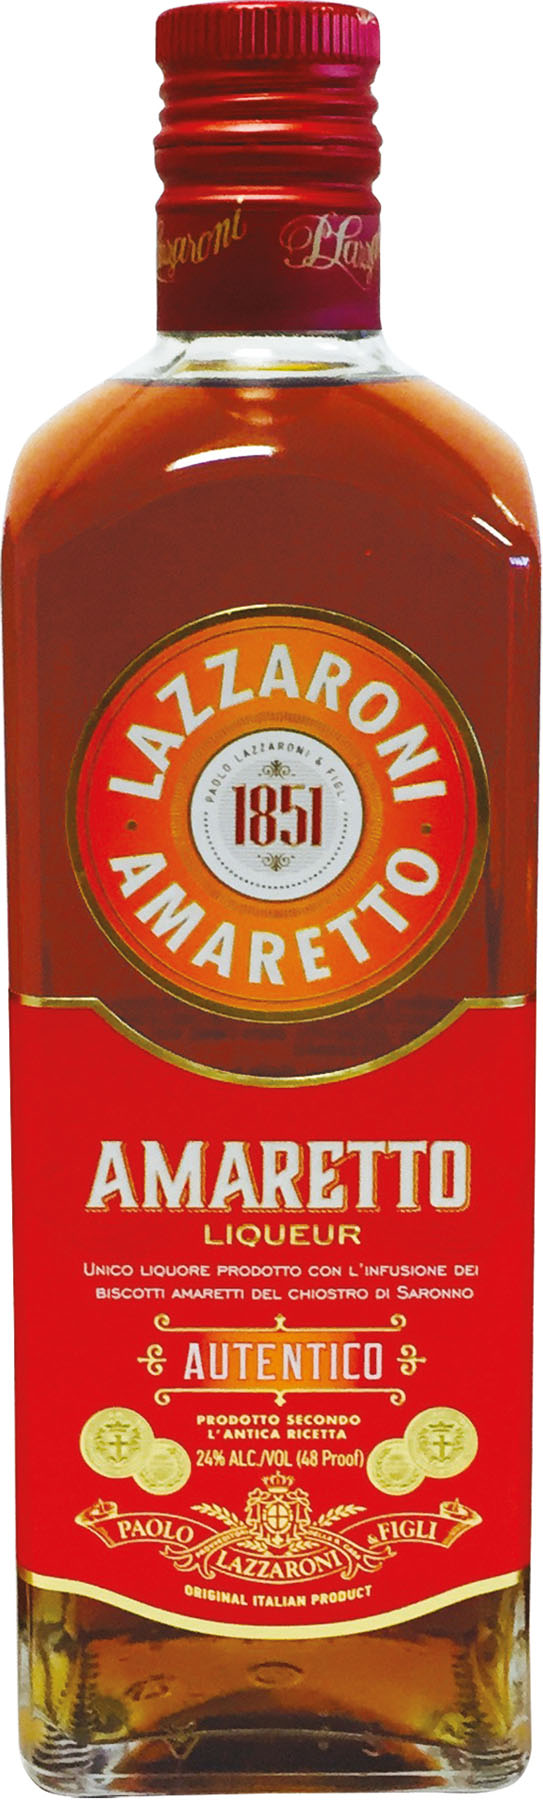 Amaretto Autentico Lazzaroni 100 cl 24°